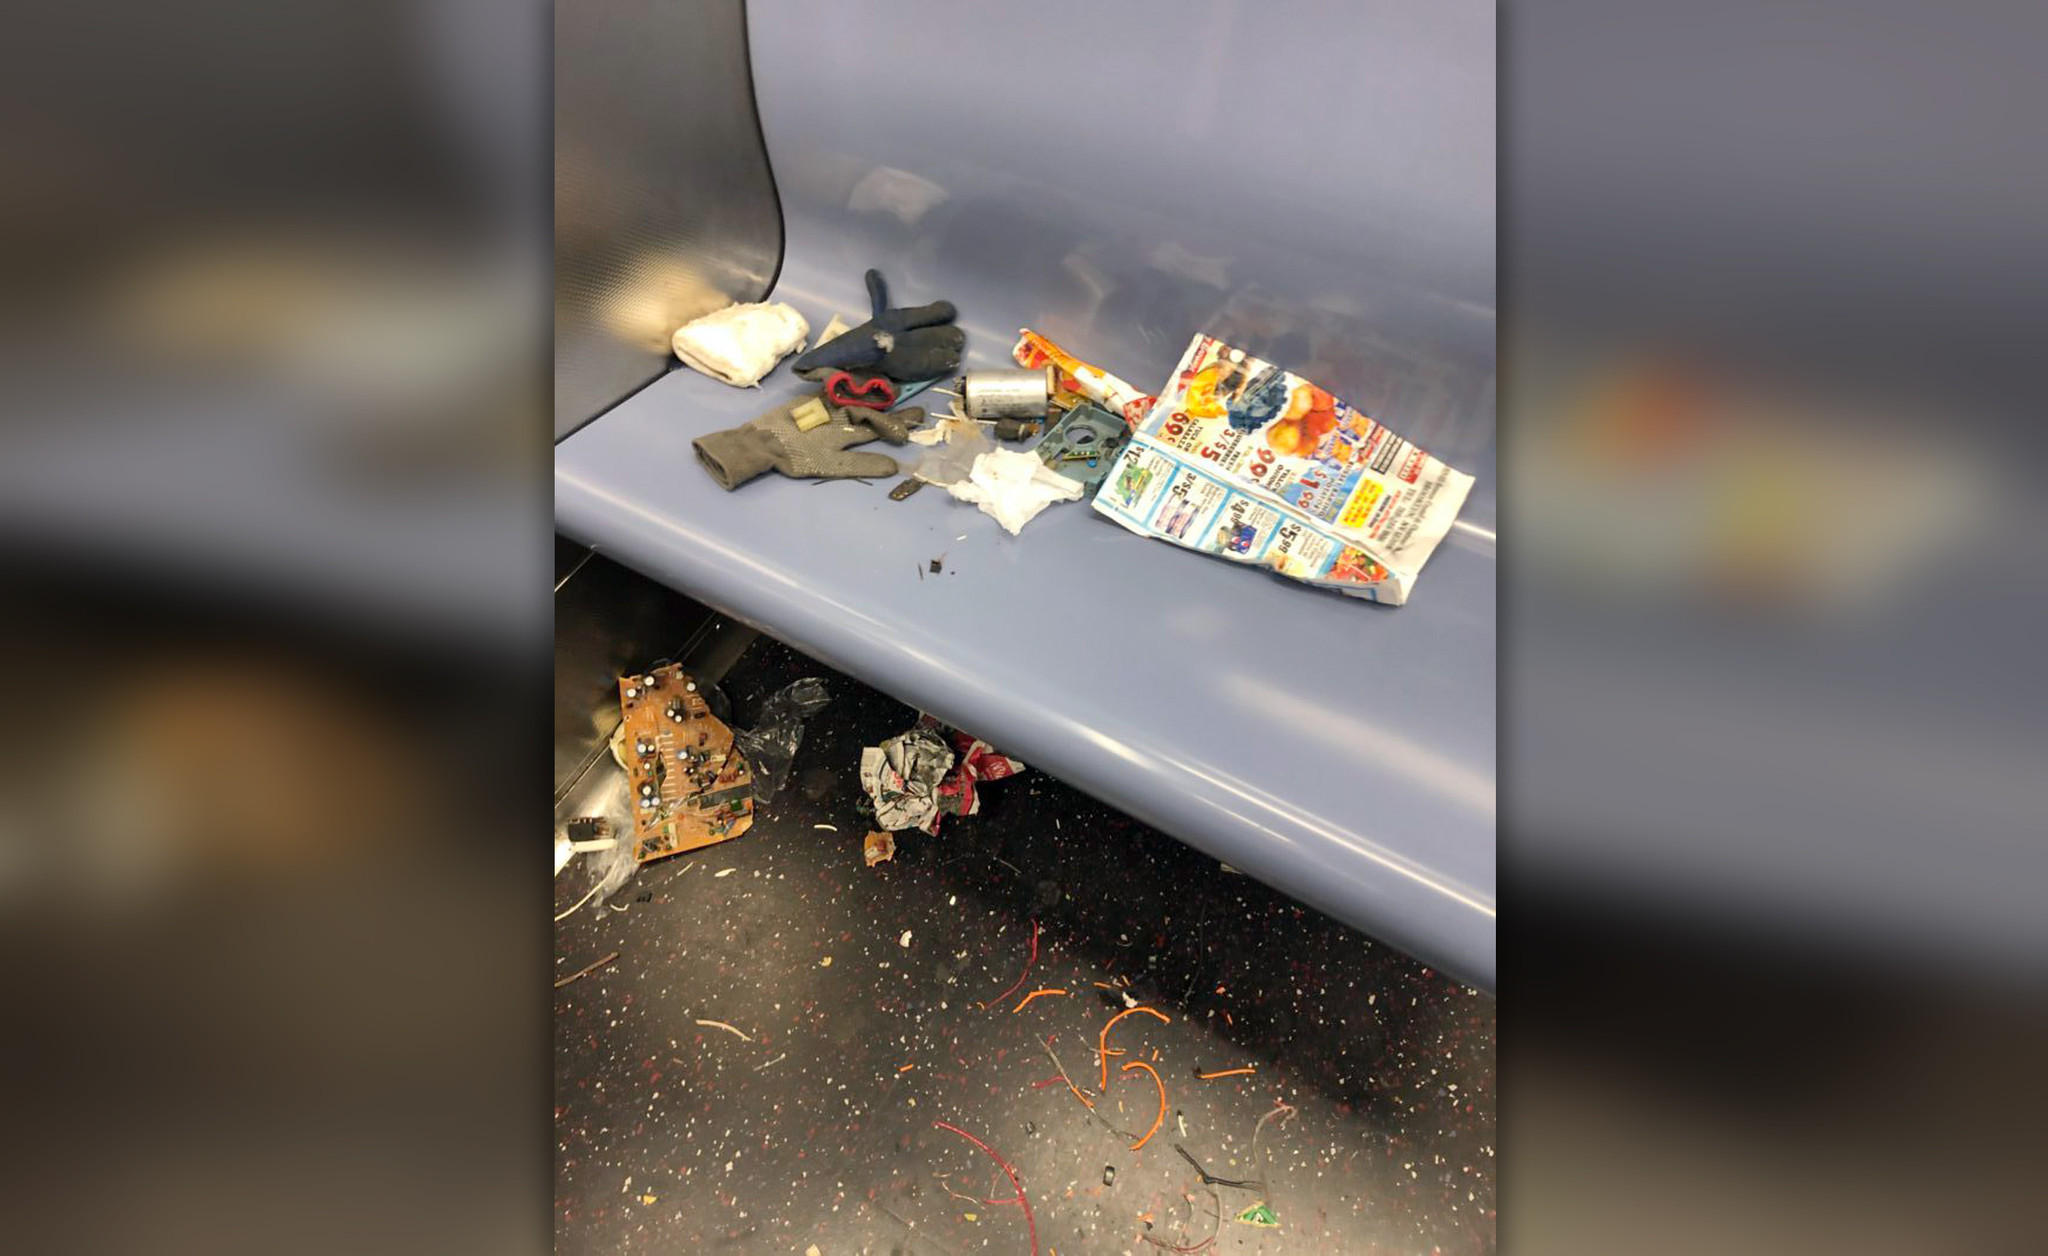 MTA workers say job cuts led to more filth on NYC subway cars